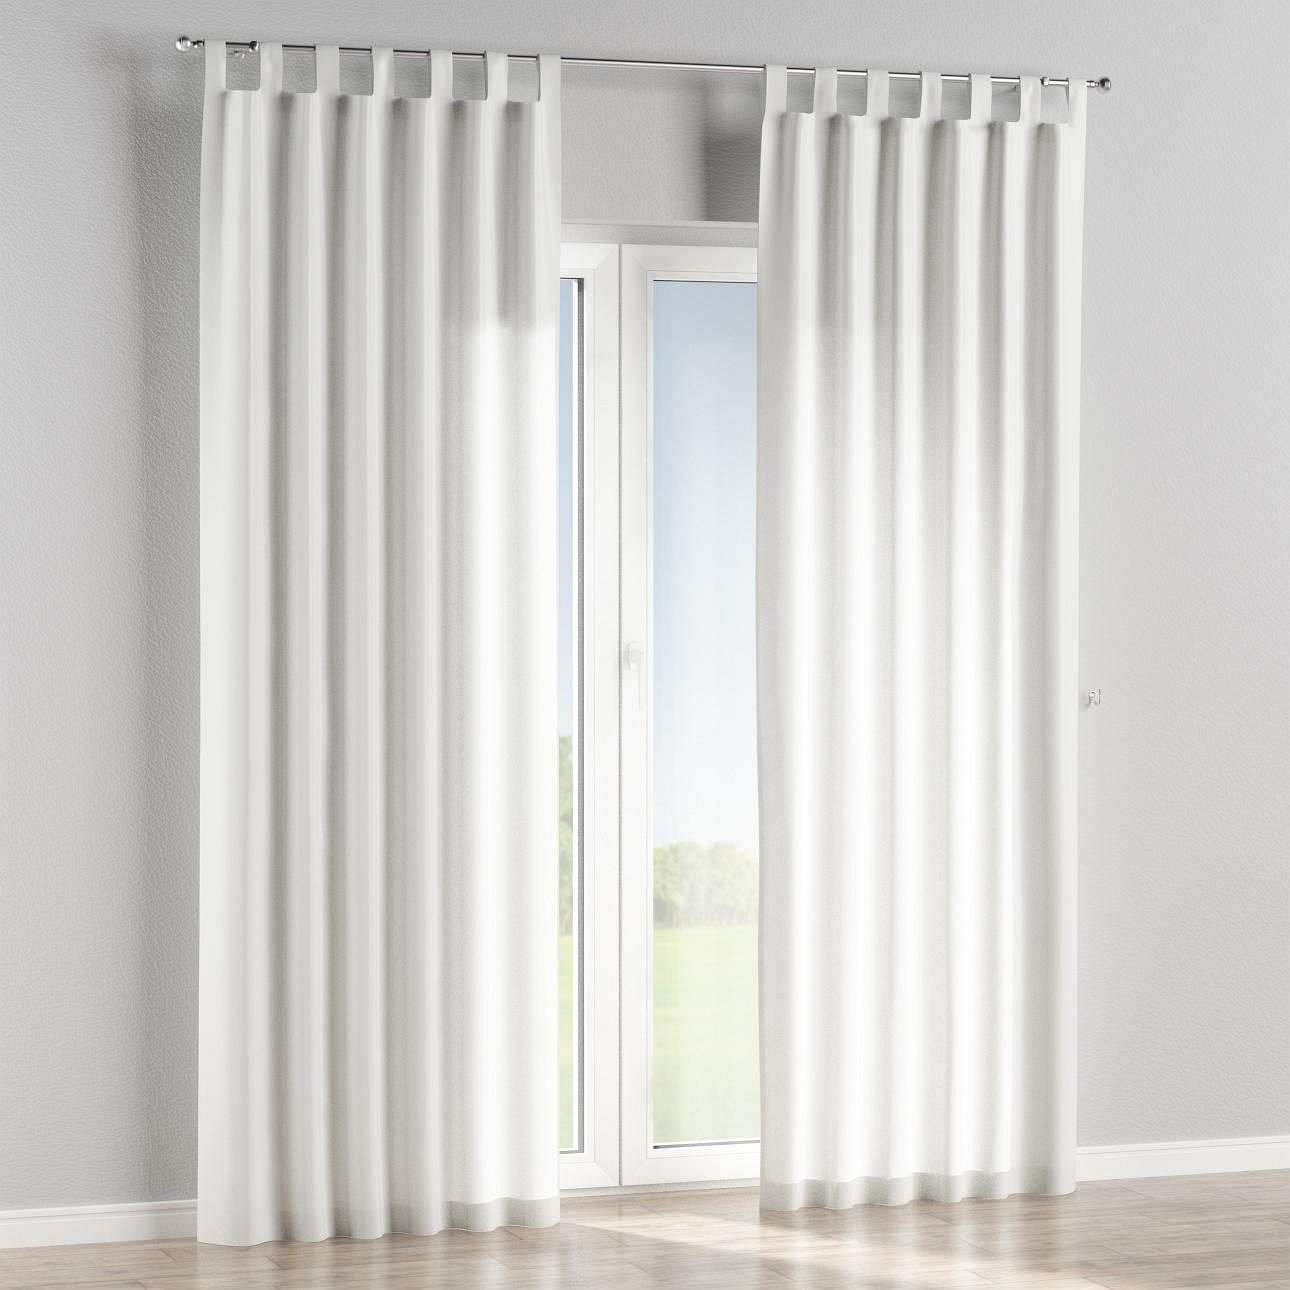 Tab top curtains in collection SALE, fabric: 411-01